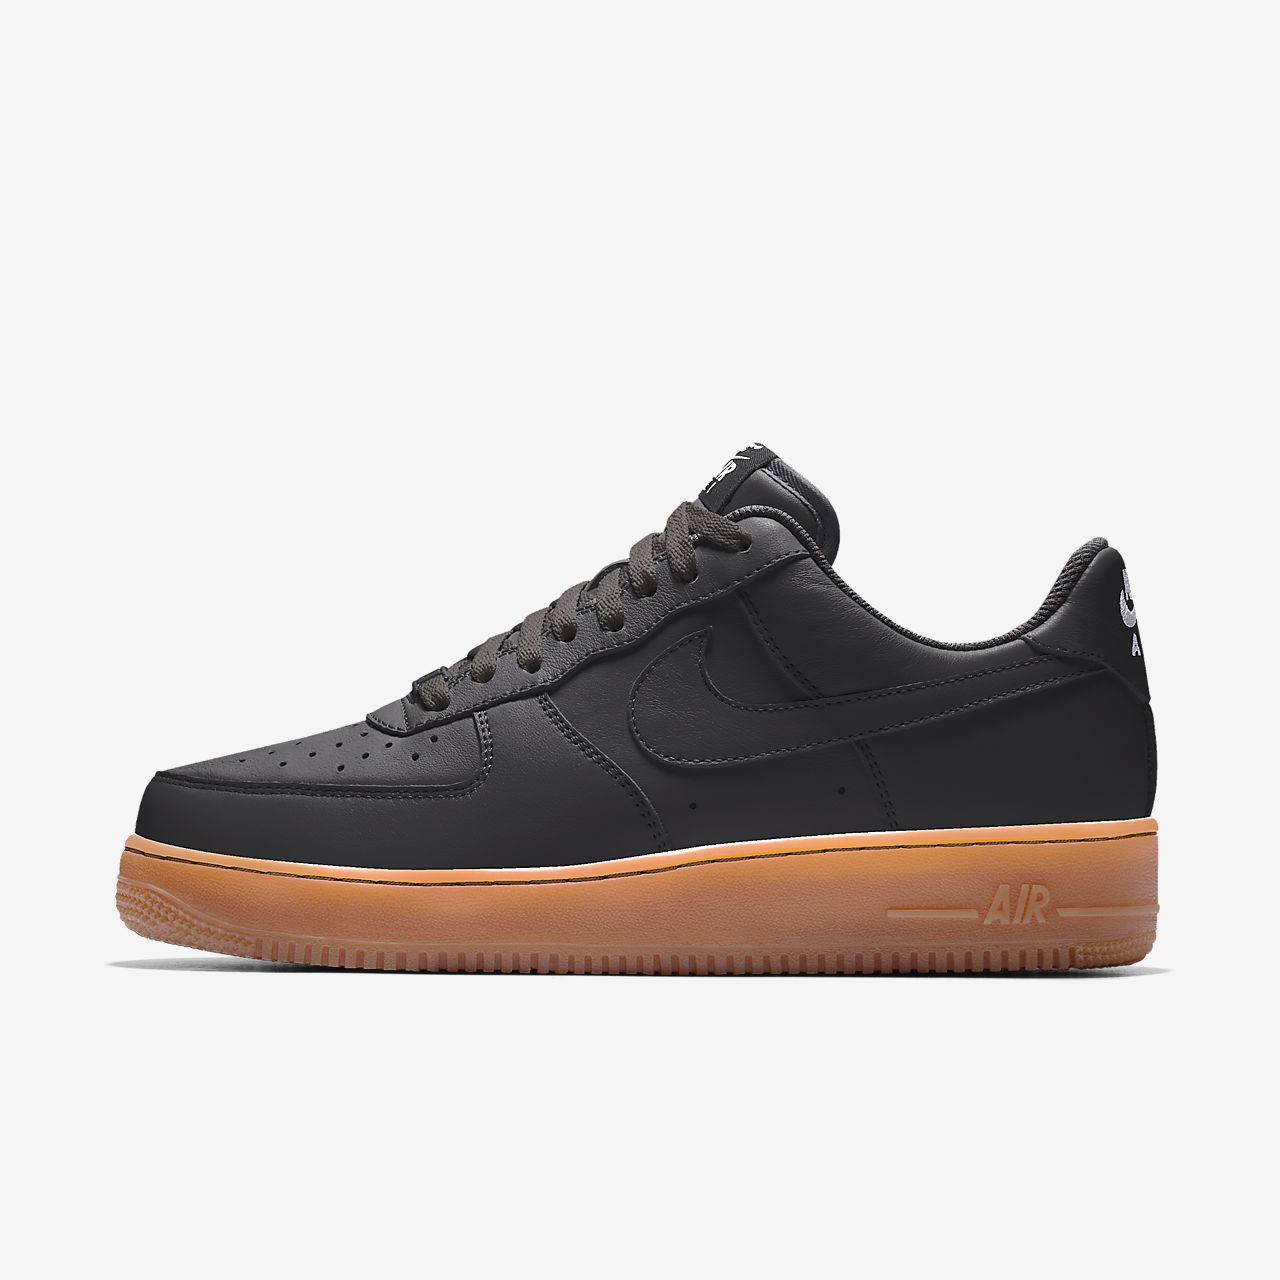 Nike Air Force 1 Low By You Custom damesschoen